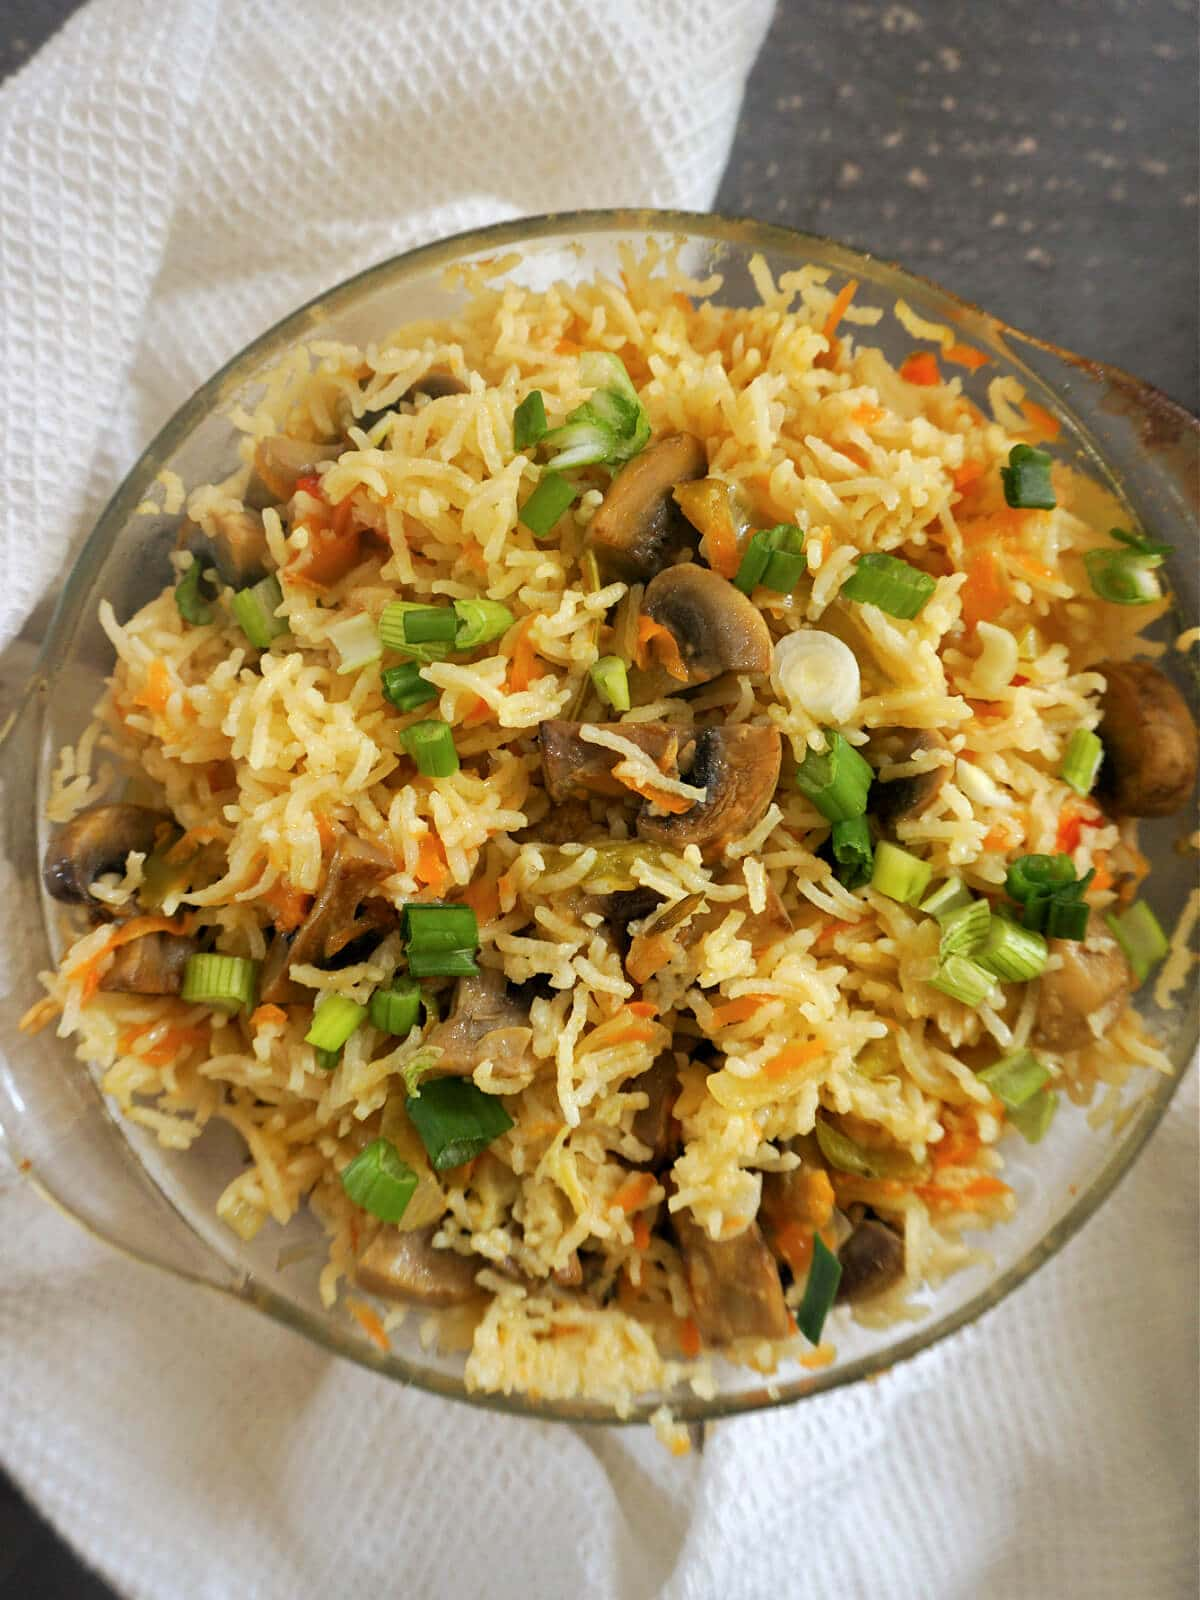 A casserole dish with vegetable rice